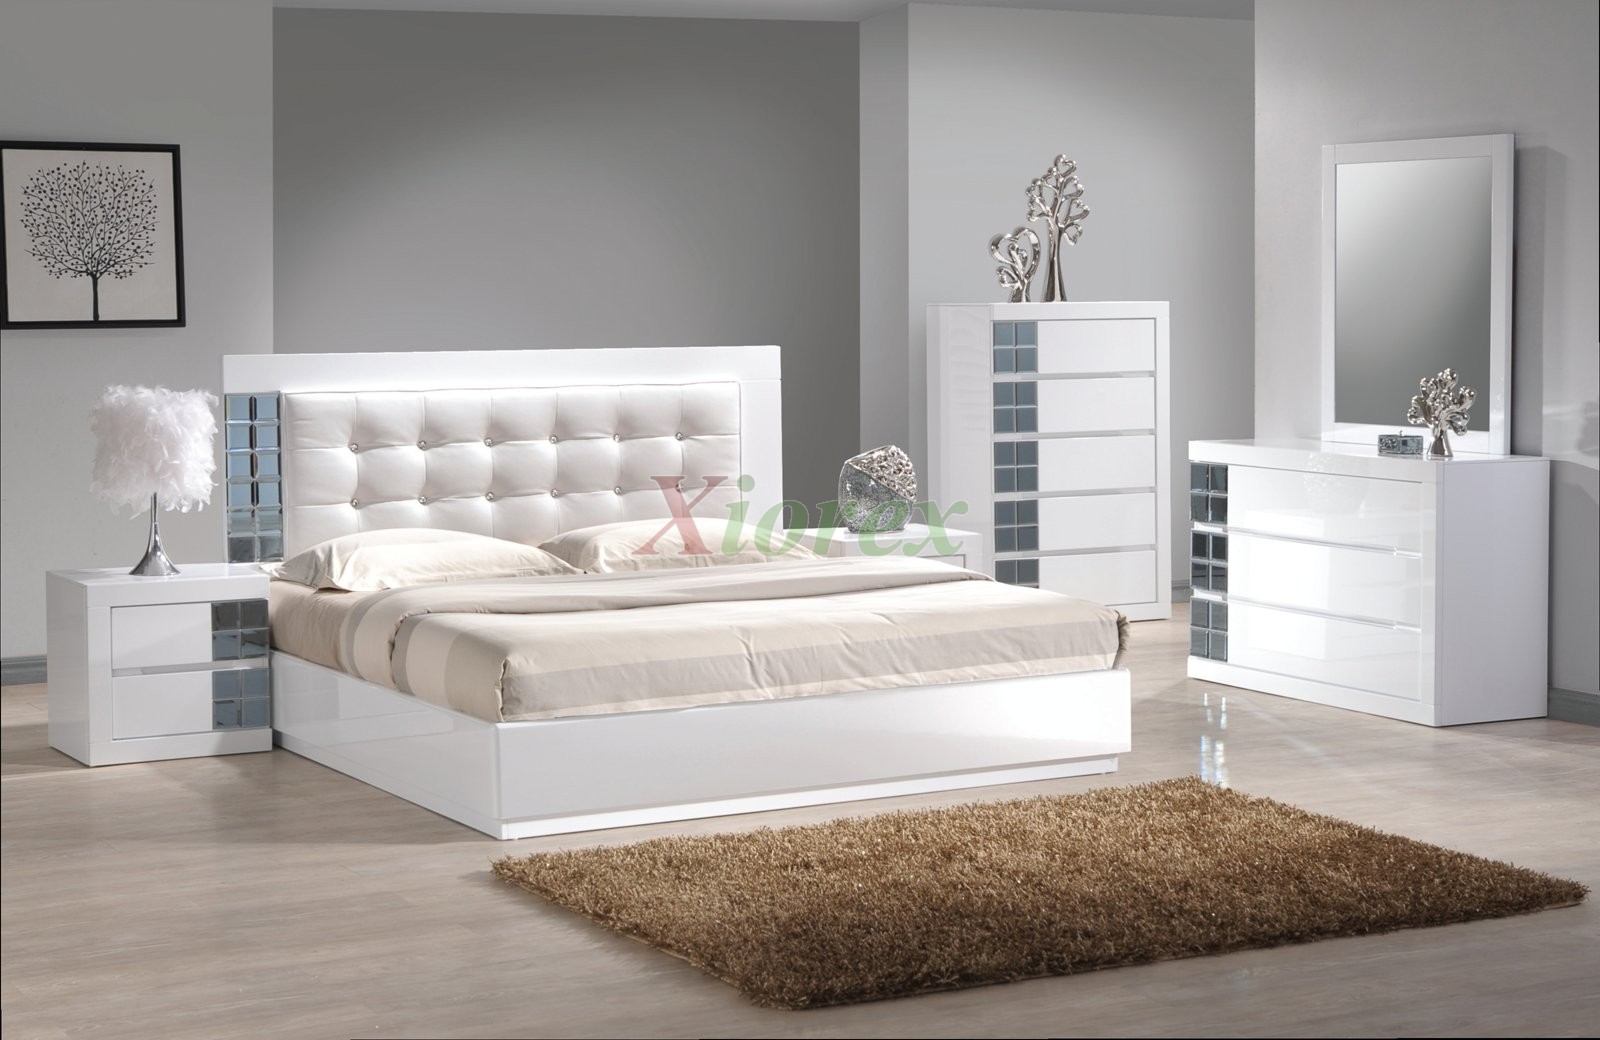 Platform bedroom furniture set w upholstered headboard for Headboard and dresser set